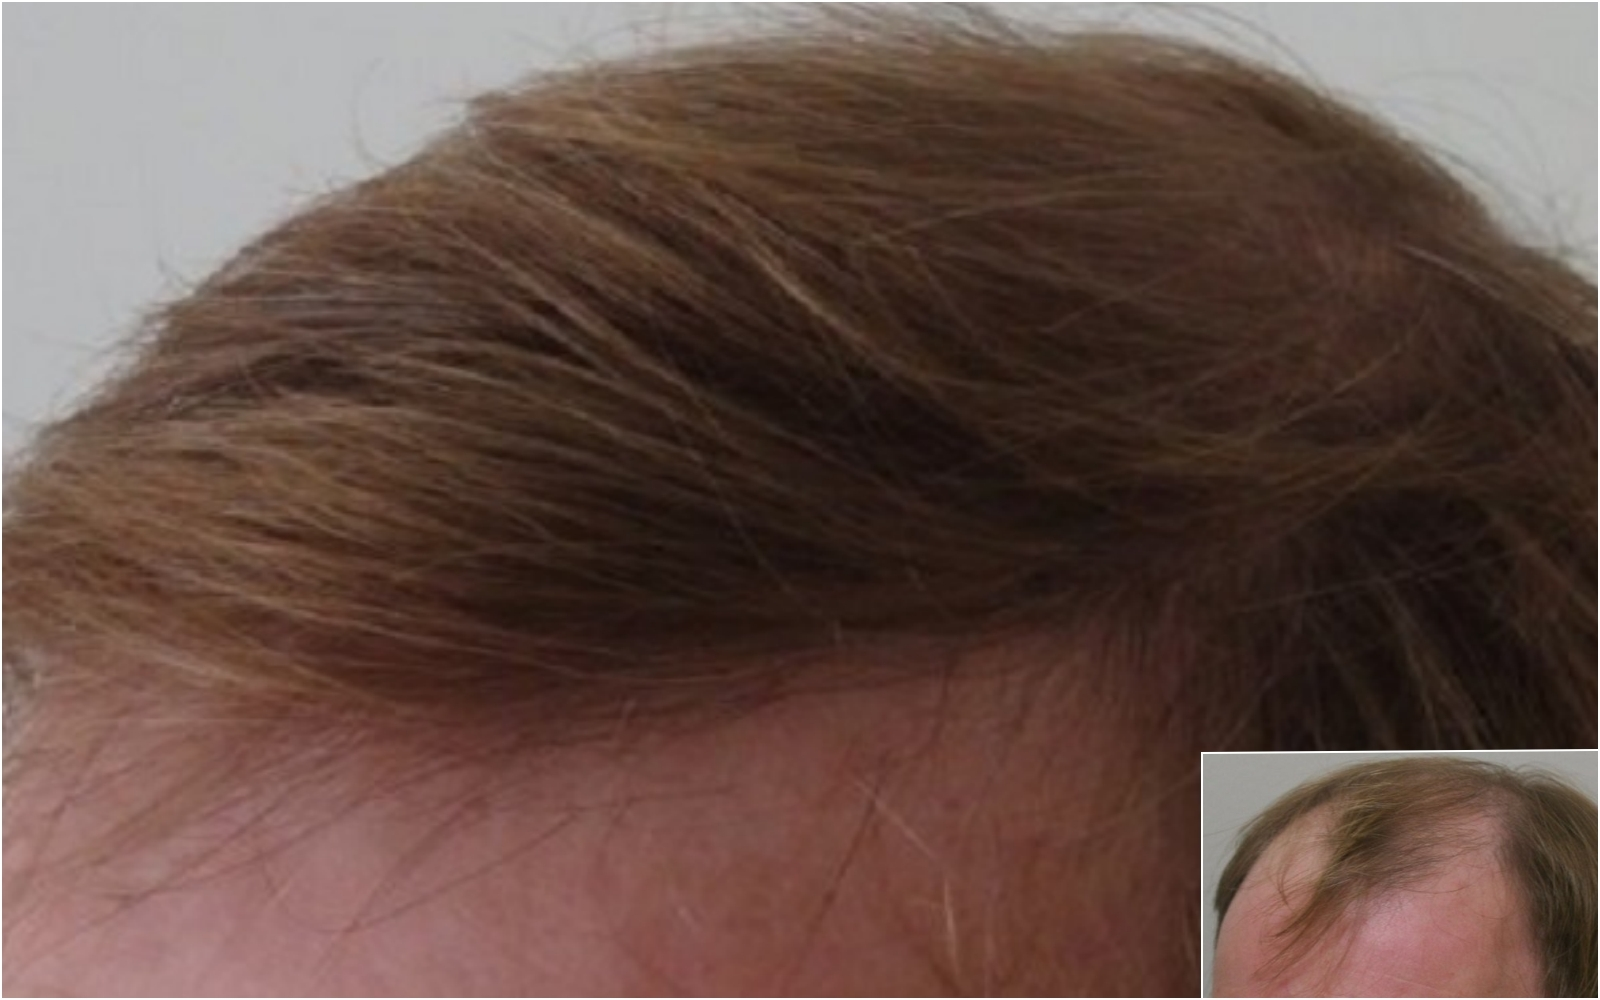 Hair transplant new hairline and frontal hair coverage